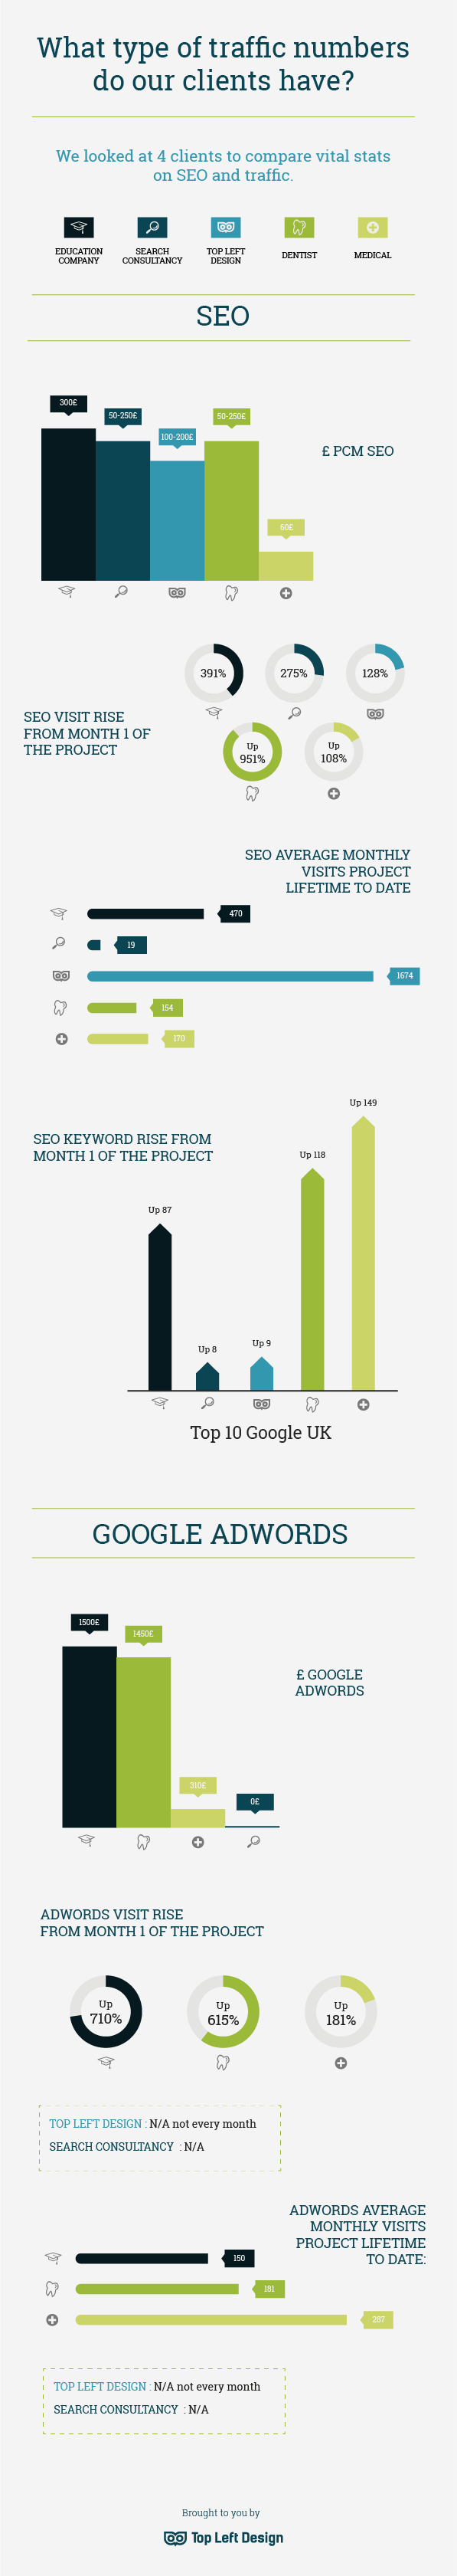 SEO stats - infographic comparing 4 businesses